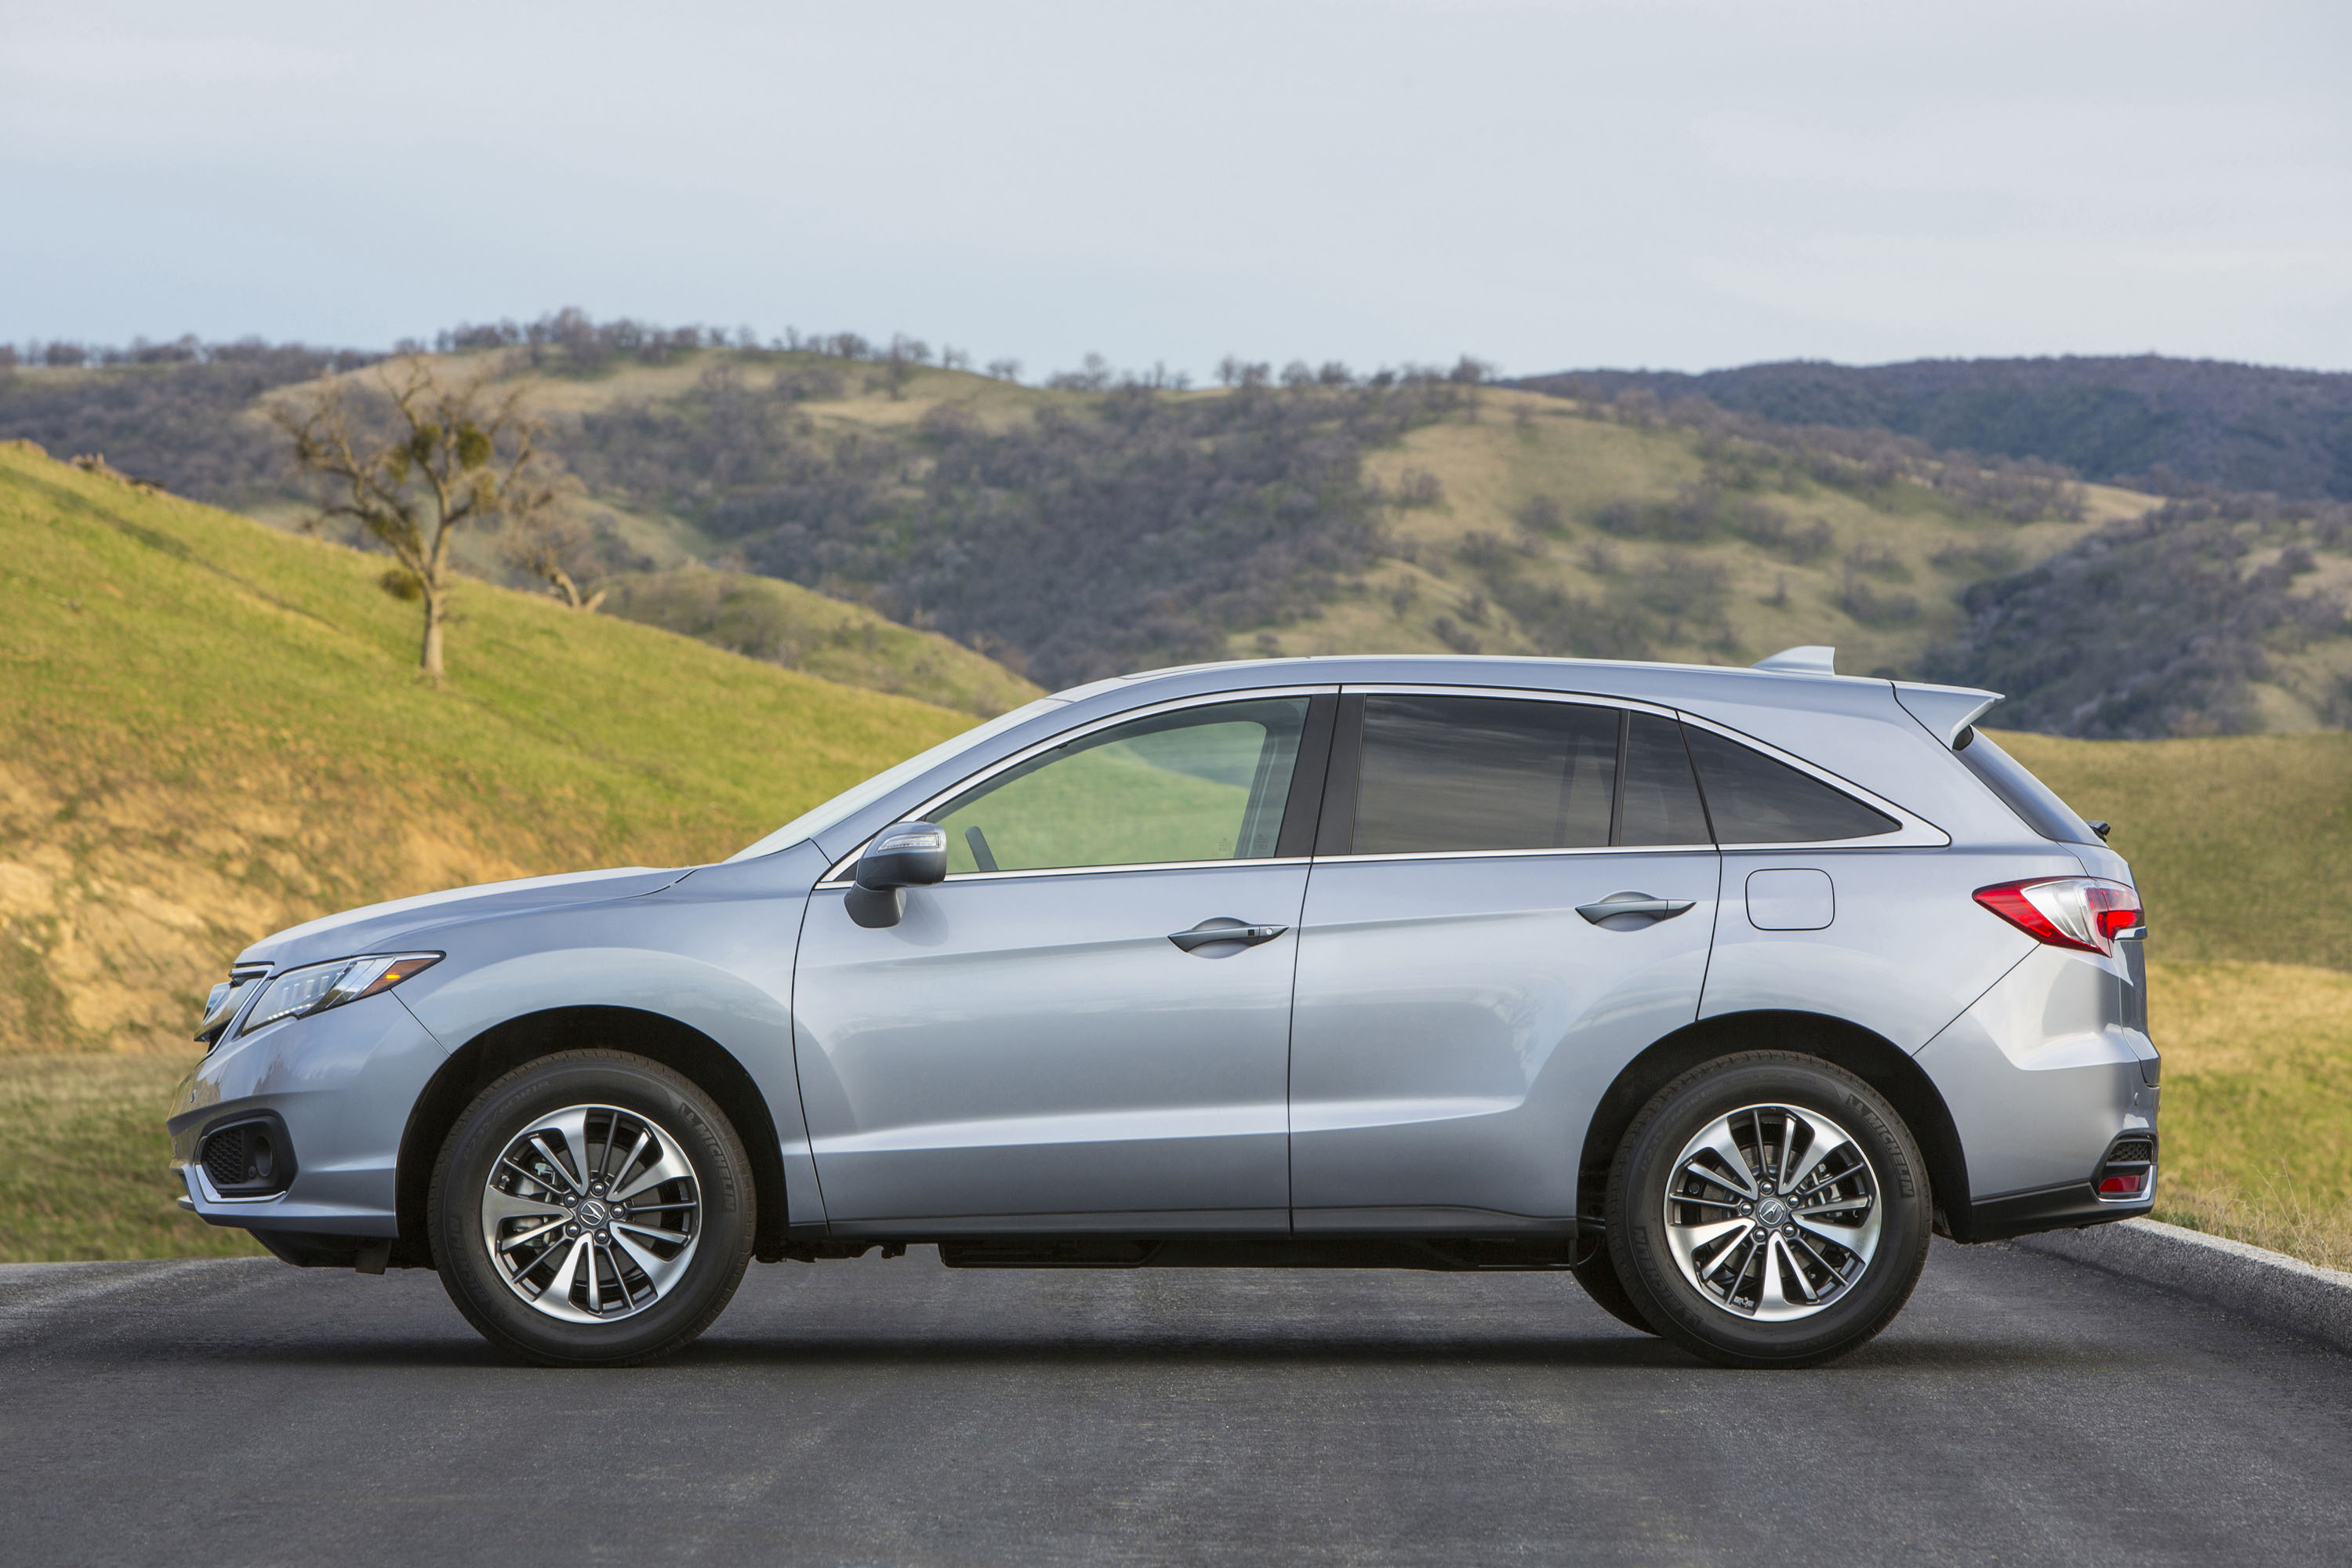 2018 acura rdx gas mileage the car connection